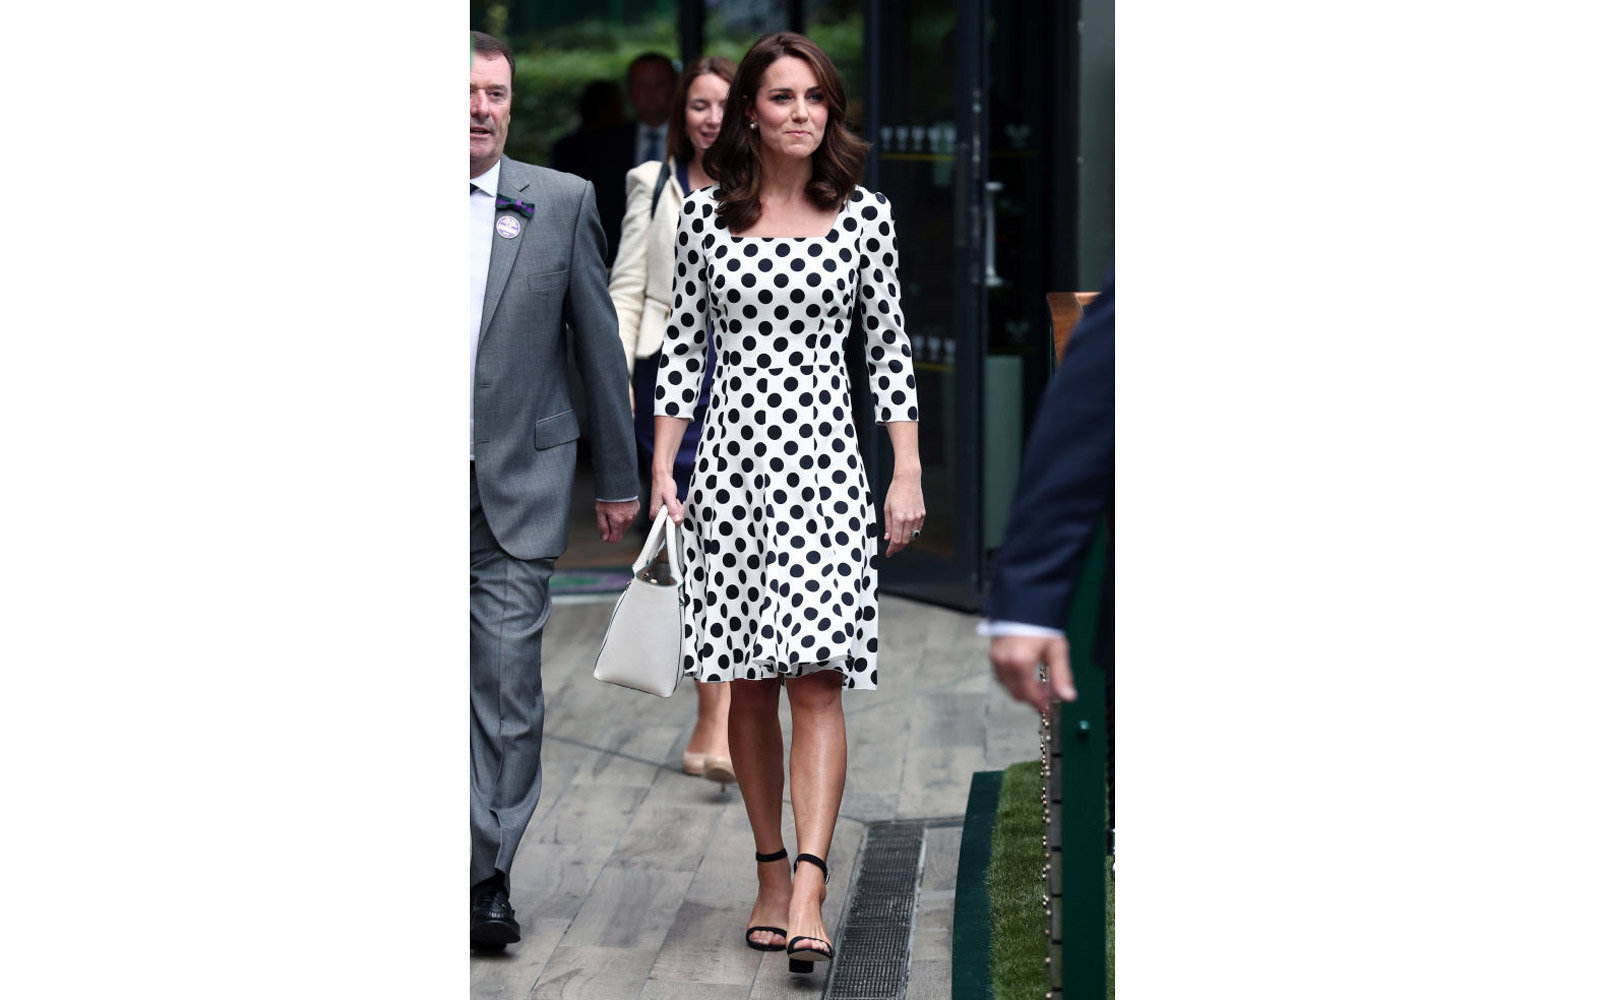 LONDON, UNITED KINGDOM - JULY 3:  Catherine, Duchess of Cambridge, Patron of the All England Lawn Tennis and Croquet Club (AELTC) with Philip Brook (left) on day one of the Wimbledon Championships at The All England Lawn Tennis and Croquet Club, in Wimble